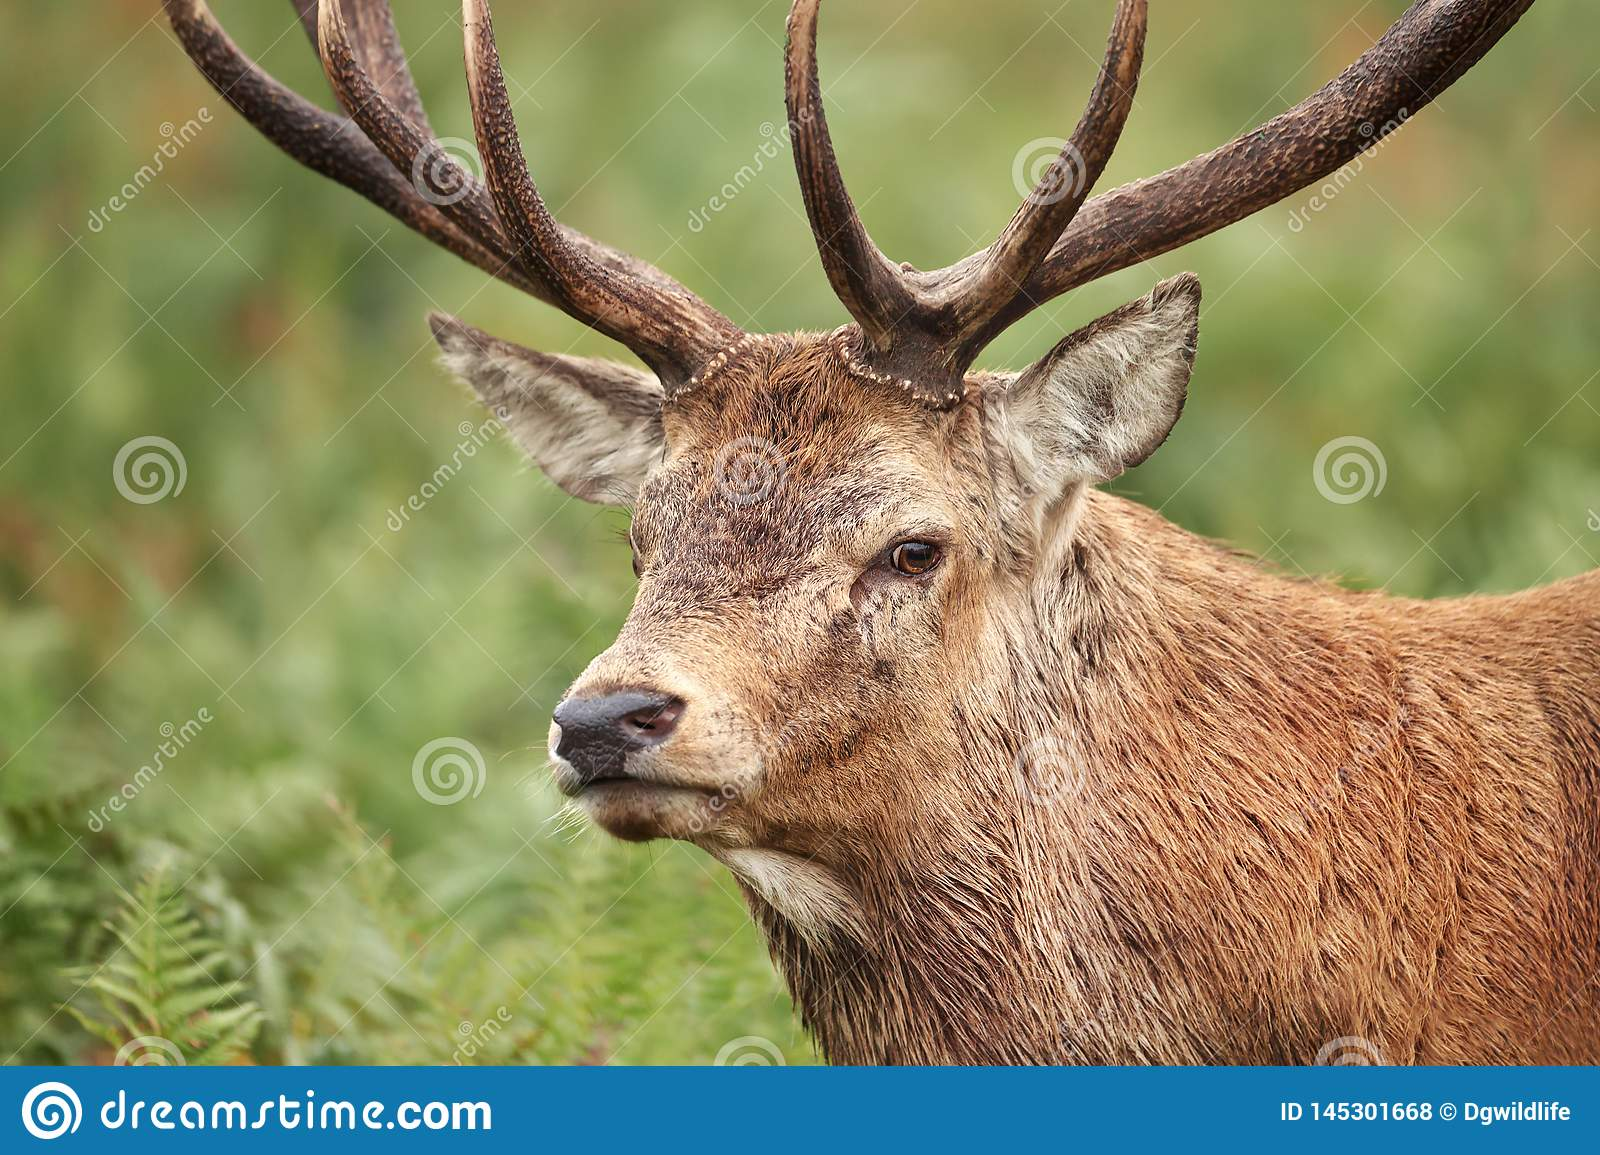 Close-up of red deer stag during rutting season